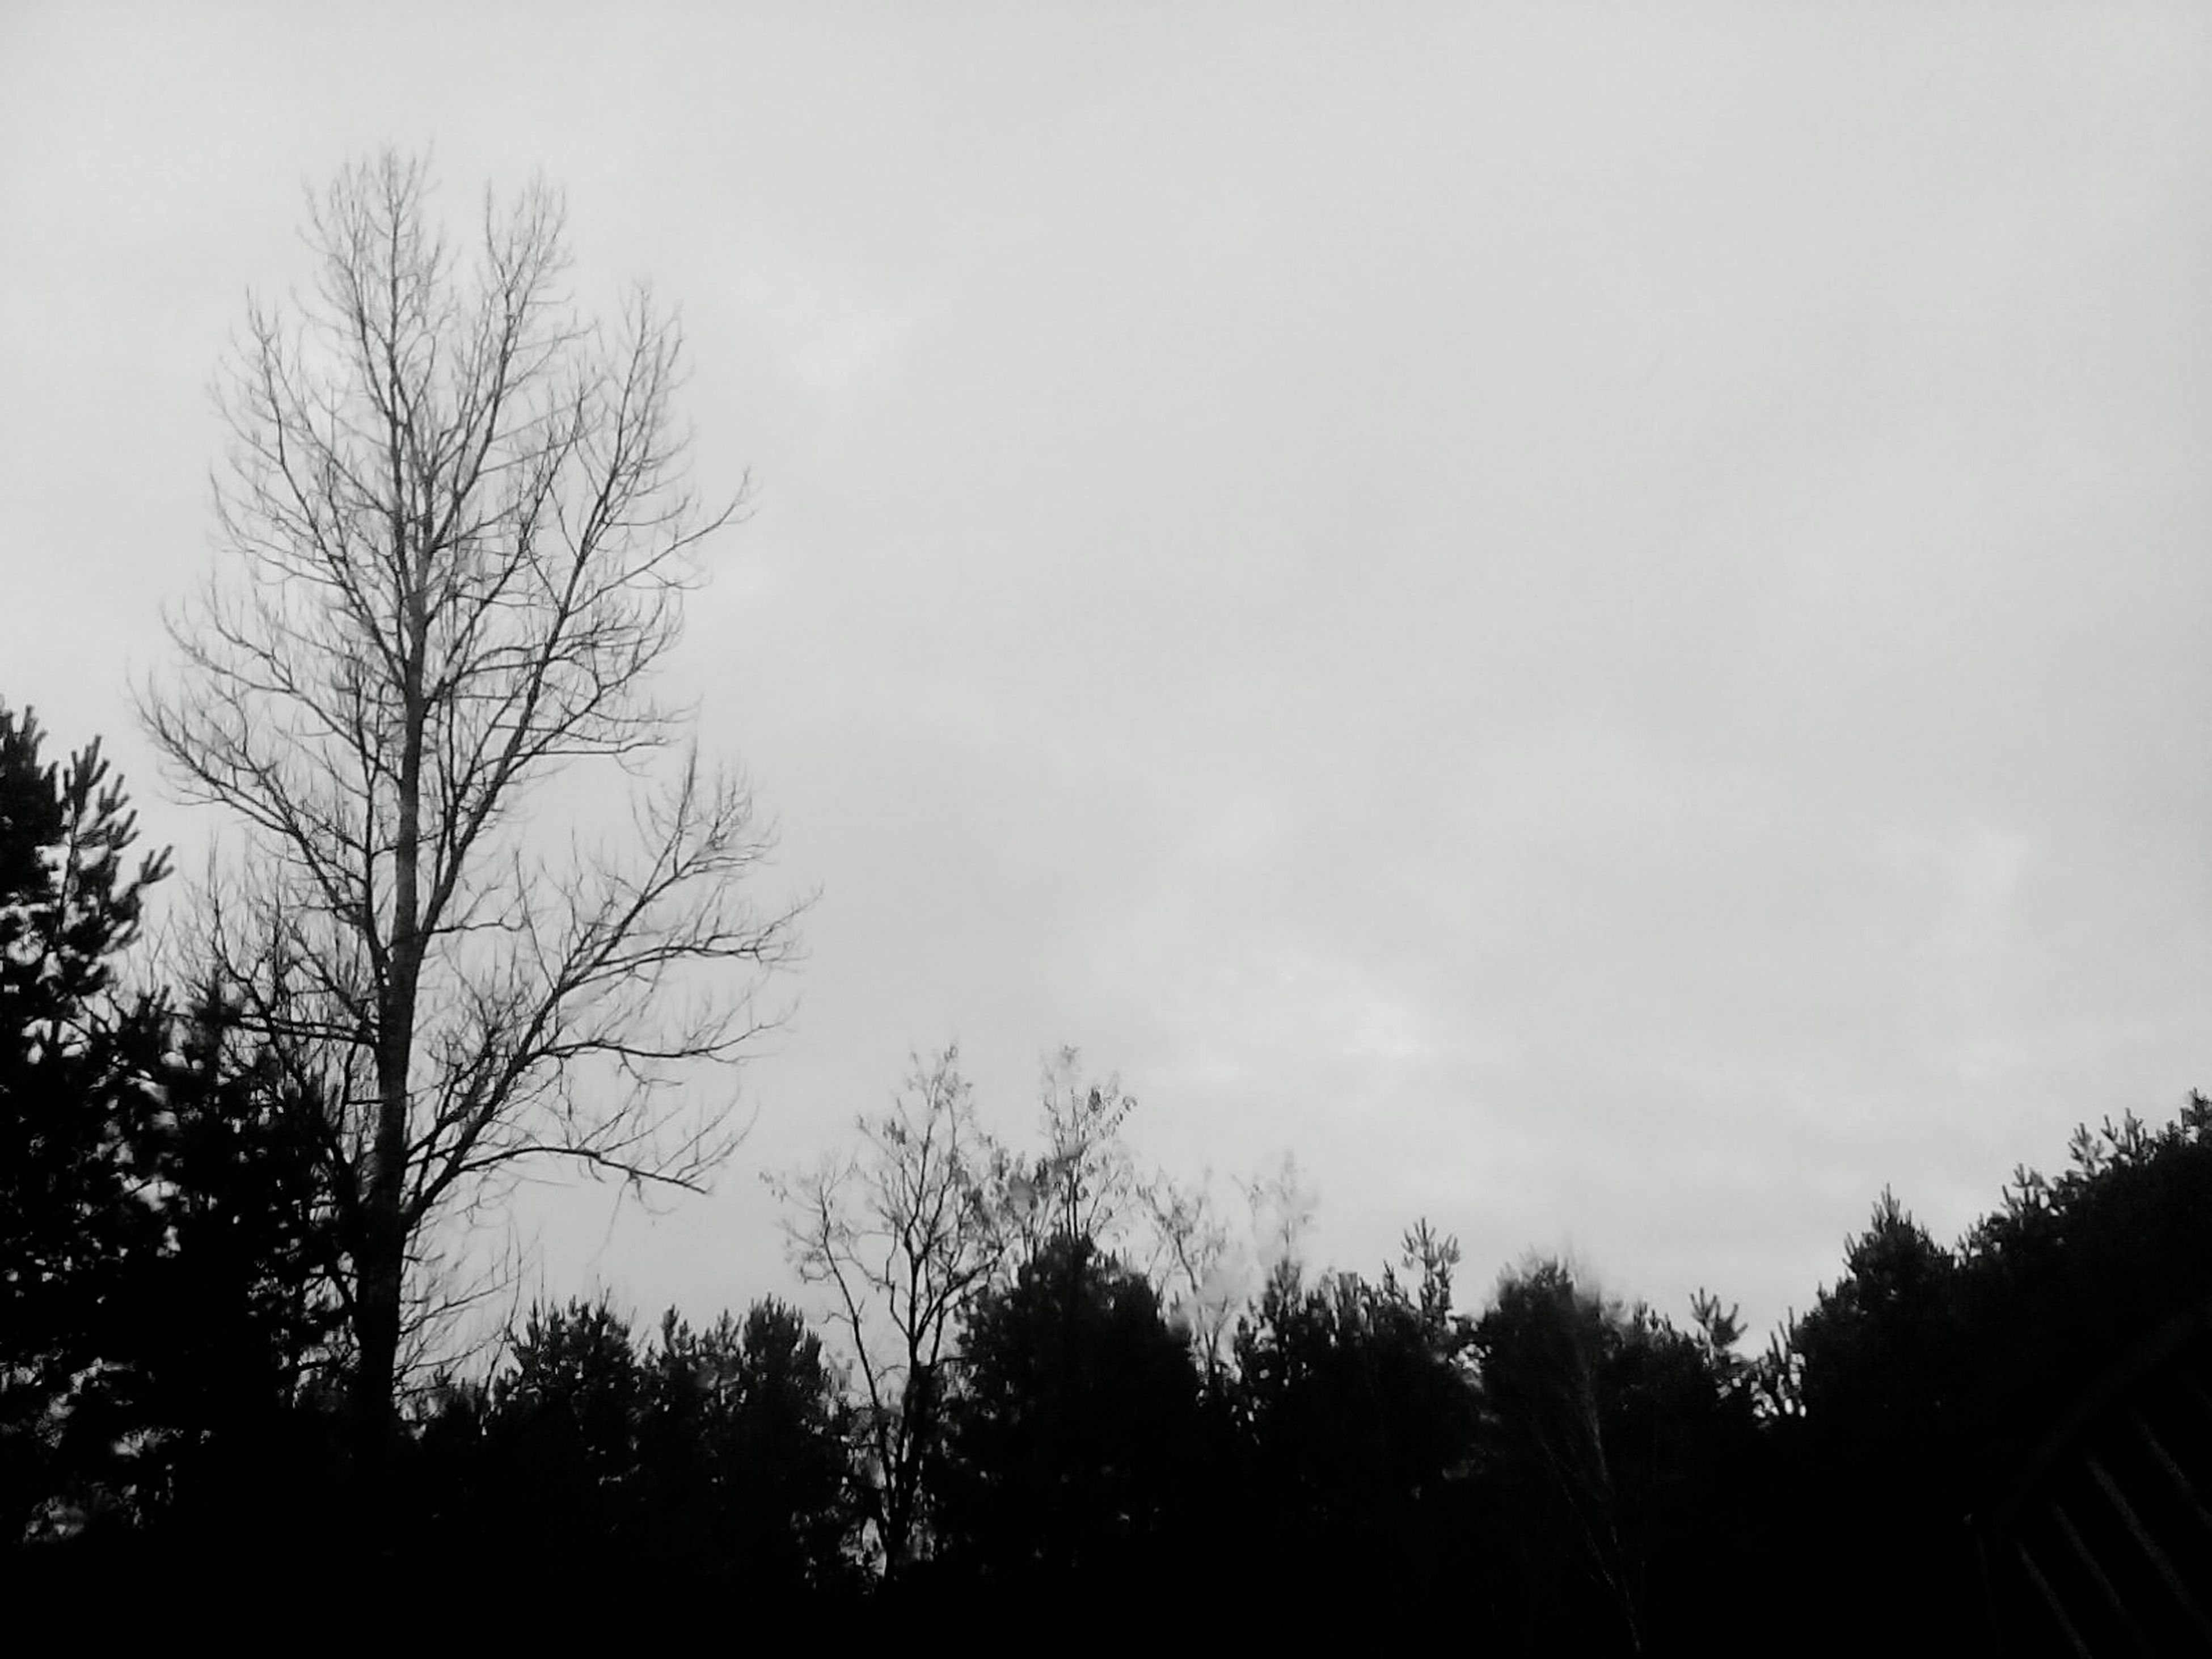 tree, silhouette, bare tree, sky, low angle view, tranquility, branch, tranquil scene, beauty in nature, nature, scenics, growth, dusk, copy space, clear sky, outdoors, no people, high section, day, non urban scene